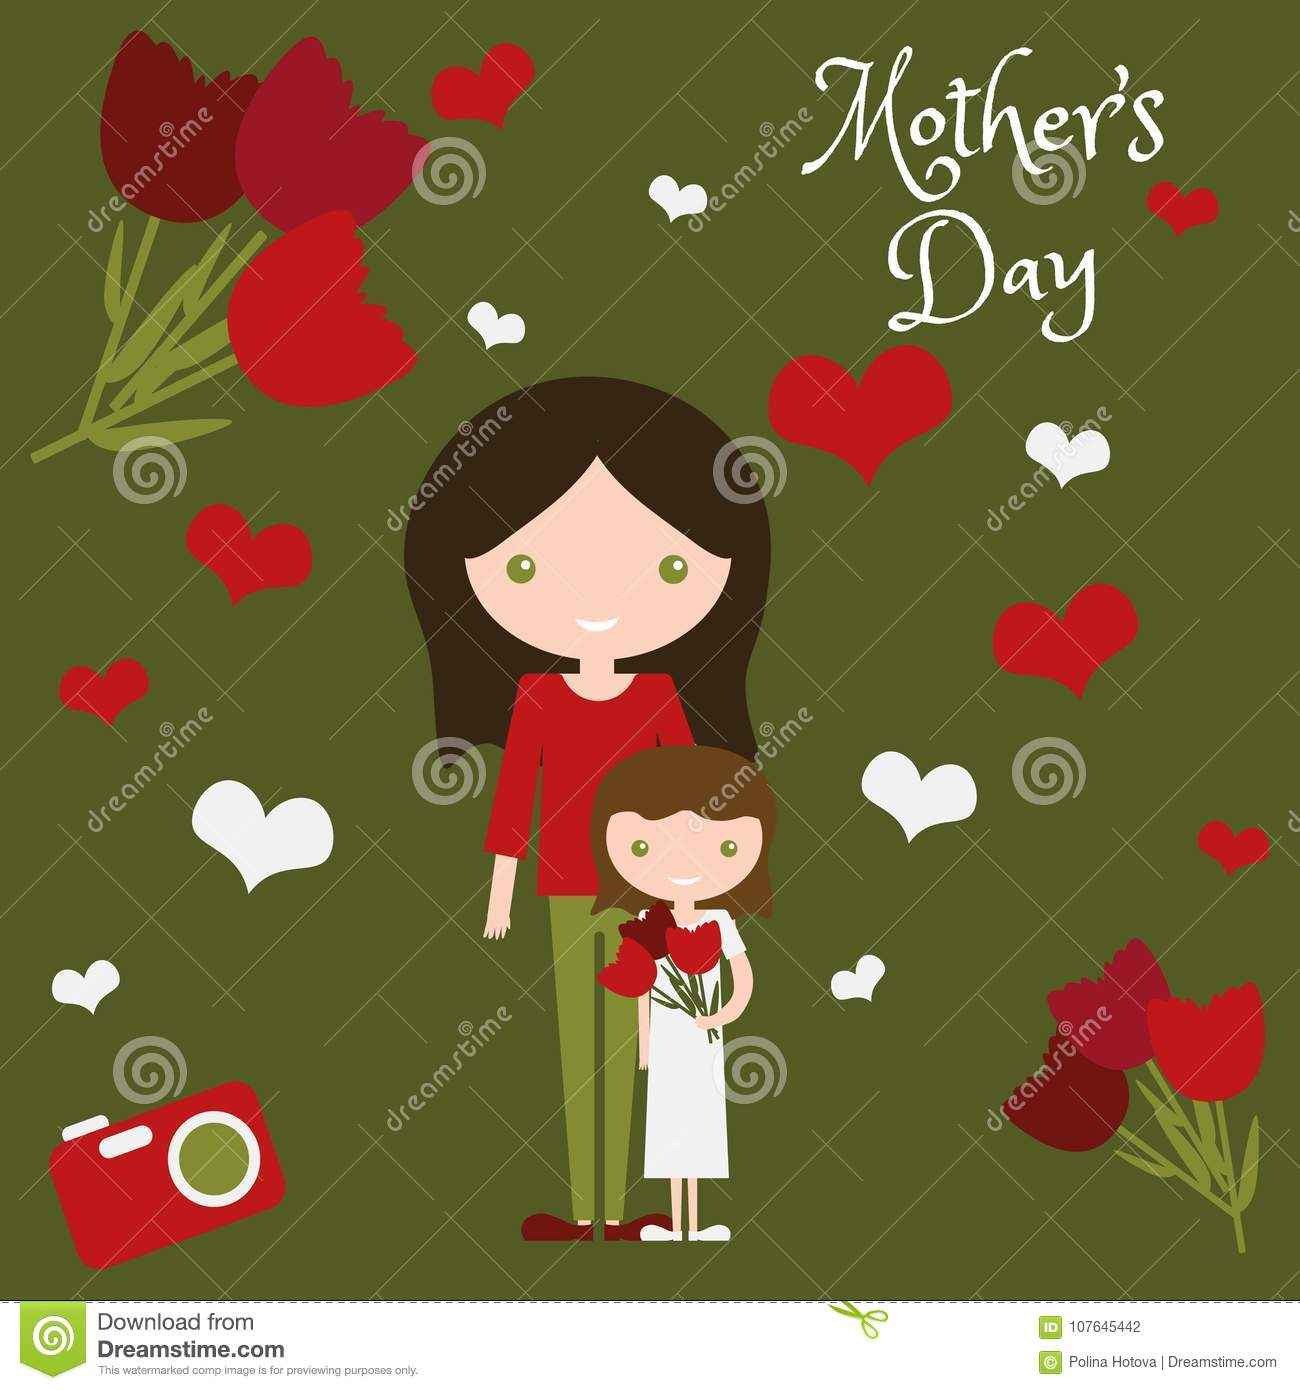 Mother day art design mom and daughter with flowers beautiful happiness family sweet little child baby and parent